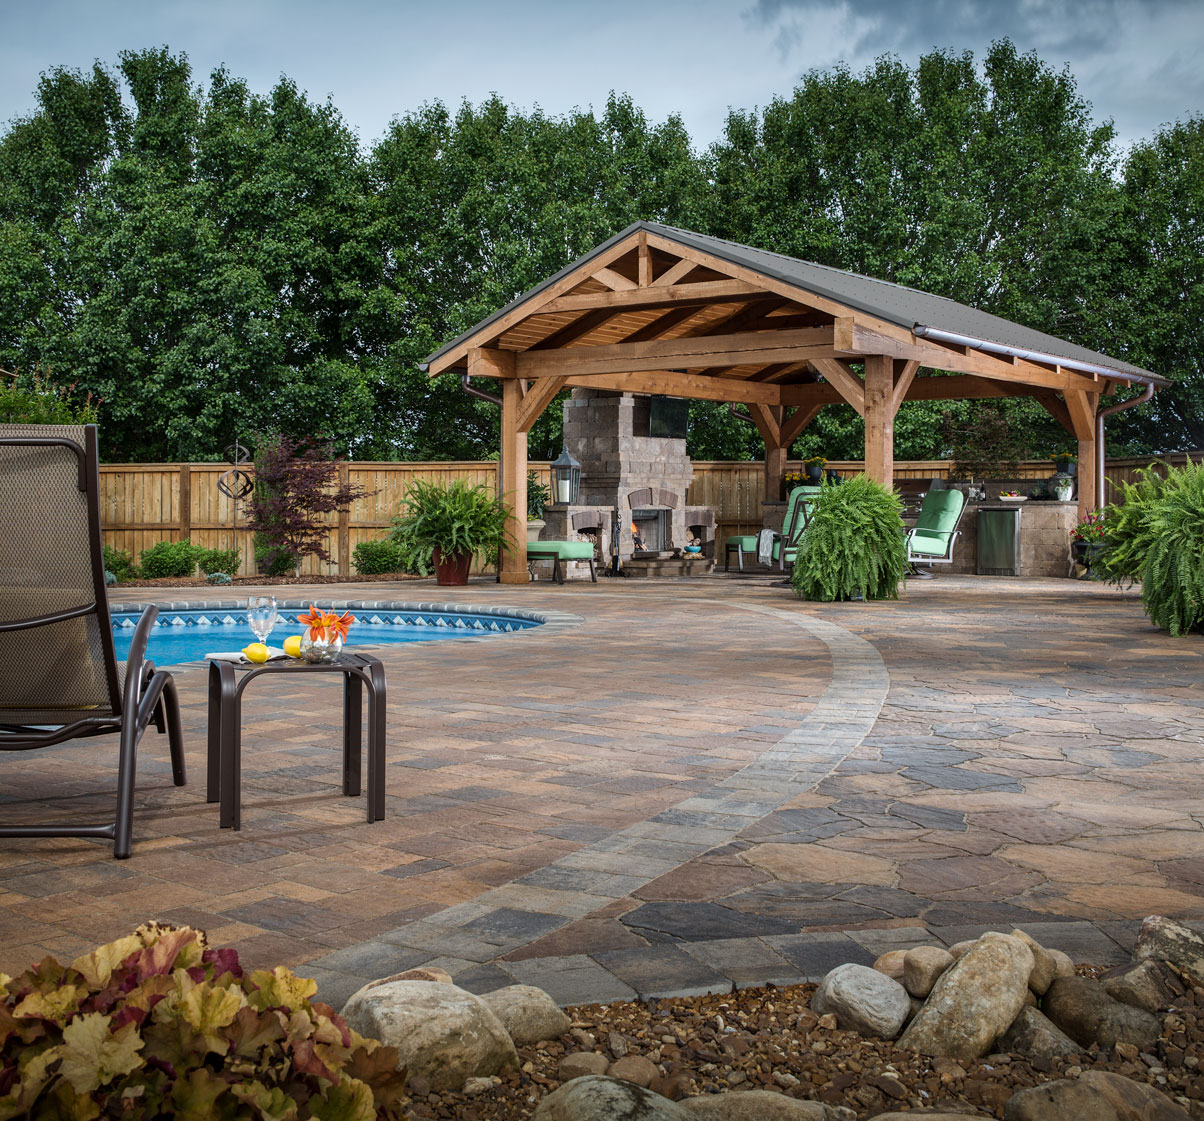 Paver Patio Ideas Backyard Design Stone Patio Pictures for 10 Smart Ways How to Make Backyard Hardscape Ideas